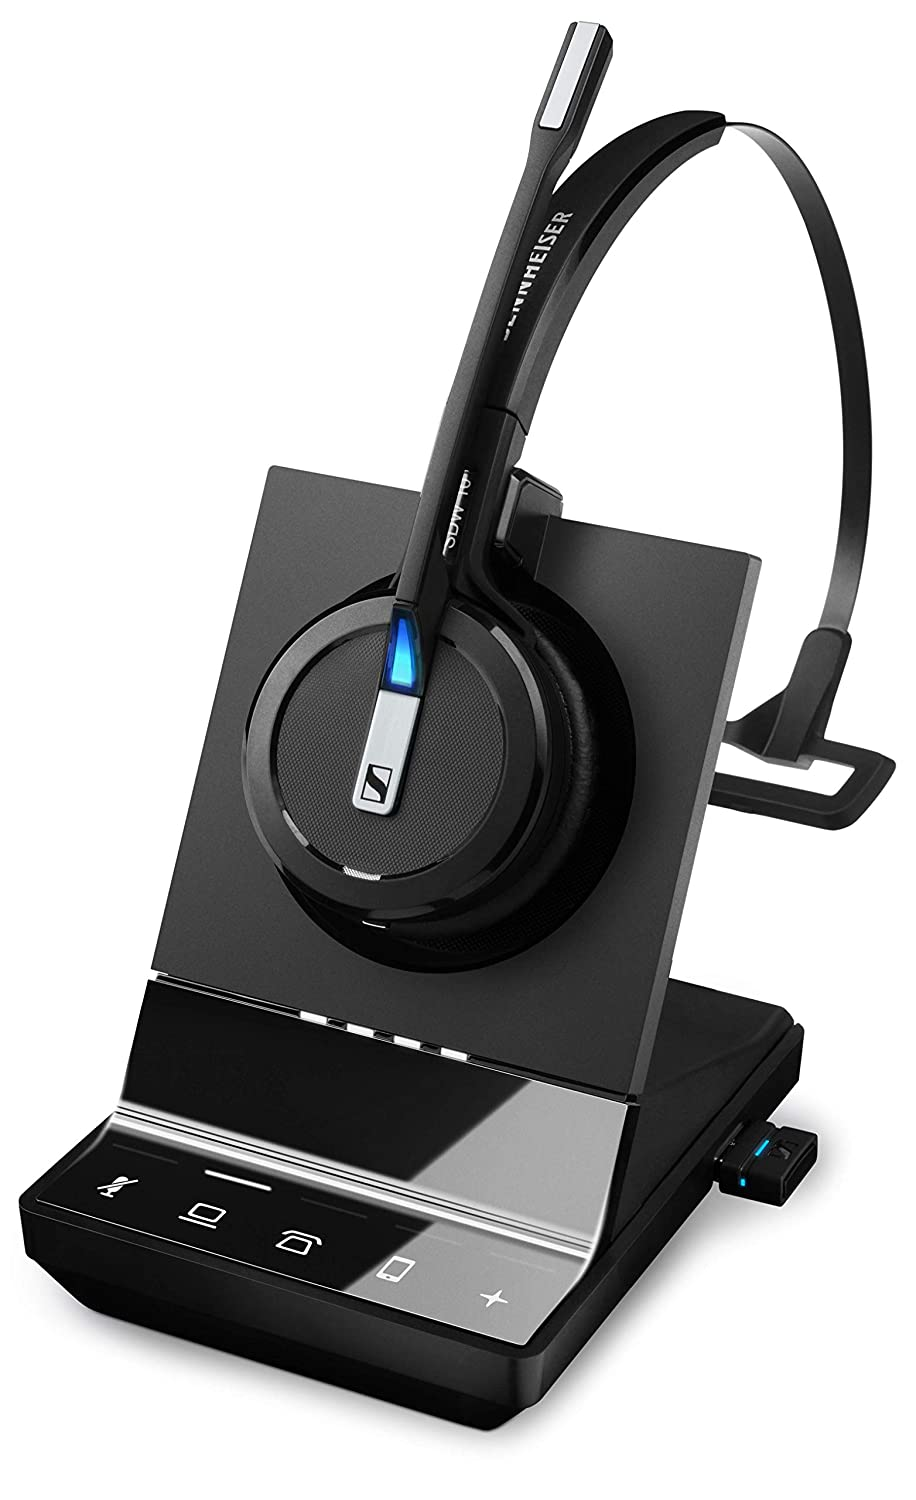 bd60776323e Sennheiser Enterprise Solution SDW 5016 Single-Sided Wireless DECT Headset  for Desk Phone Softphone PC  Mobile Phone Connection Dual Microphone Ultra  ...